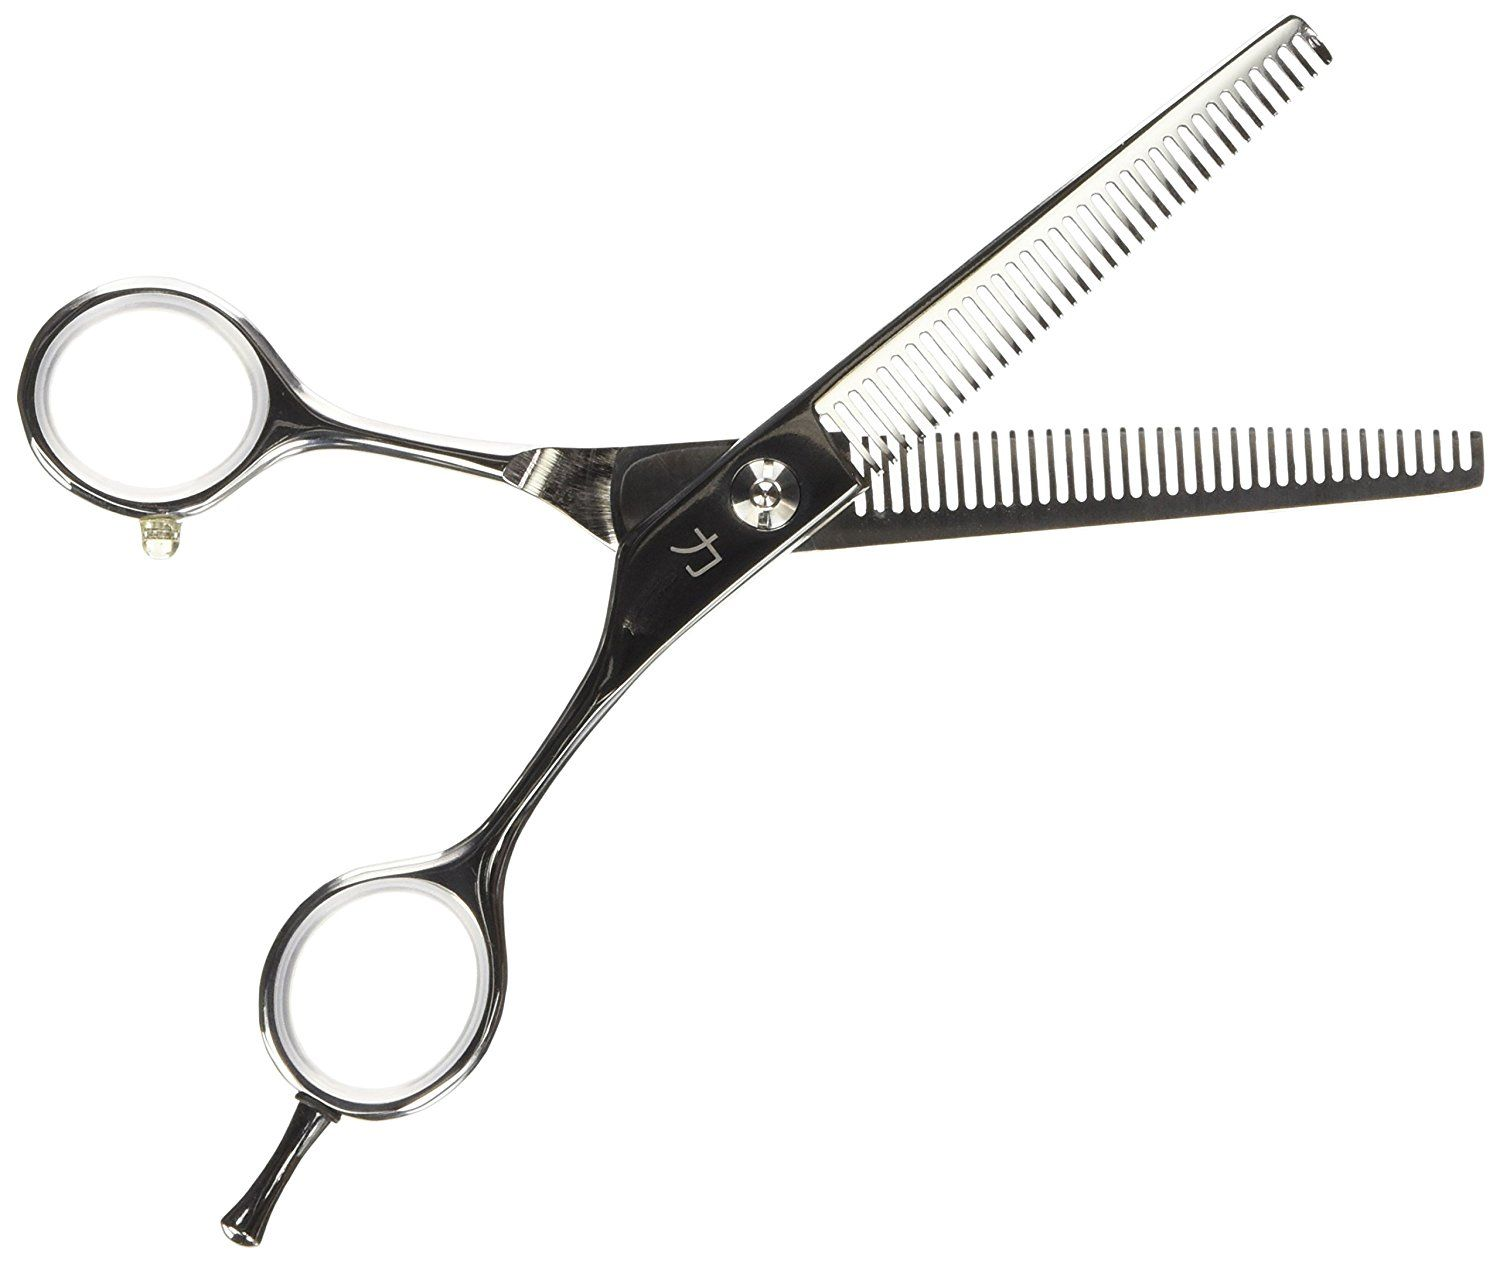 Shearsdirect Professional 34 Teeth Double Thinner 5 75 Inch Read More Reviews Of The Product By Visit Cat Grooming Cat Grooming Tools Dog Grooming Supplies